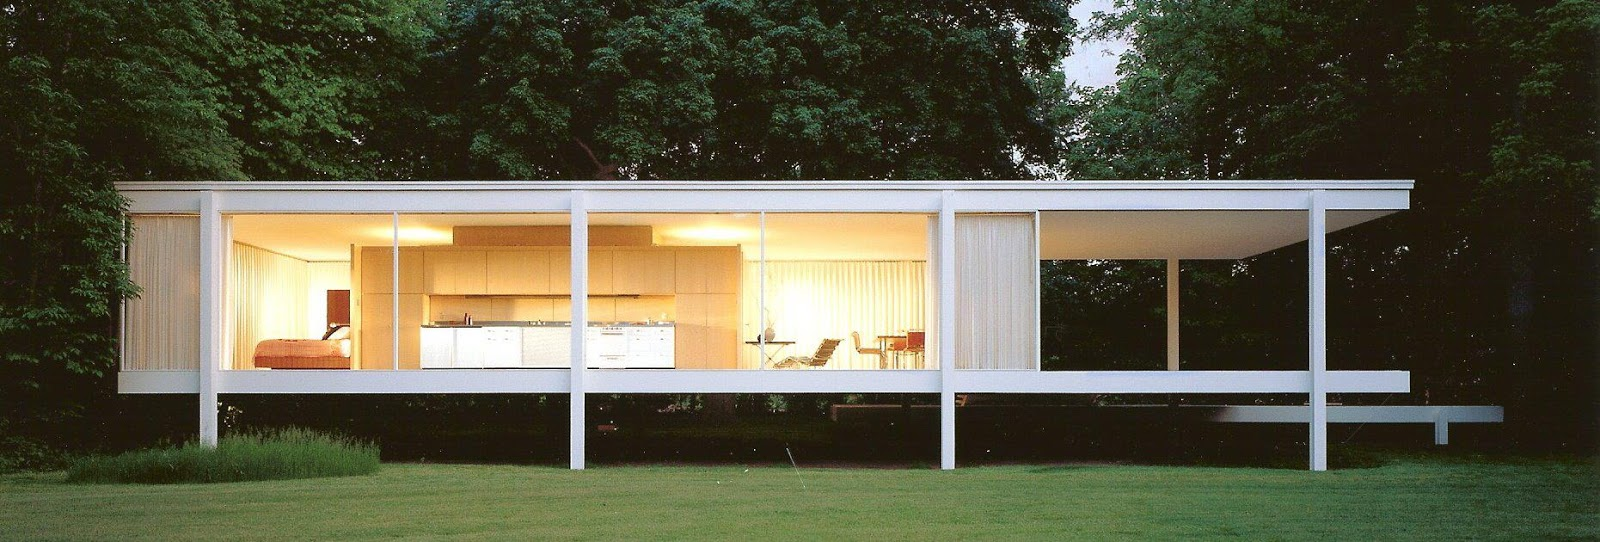 the marvelous masterpieces of ludwig mies van der rohe nanawall. Black Bedroom Furniture Sets. Home Design Ideas